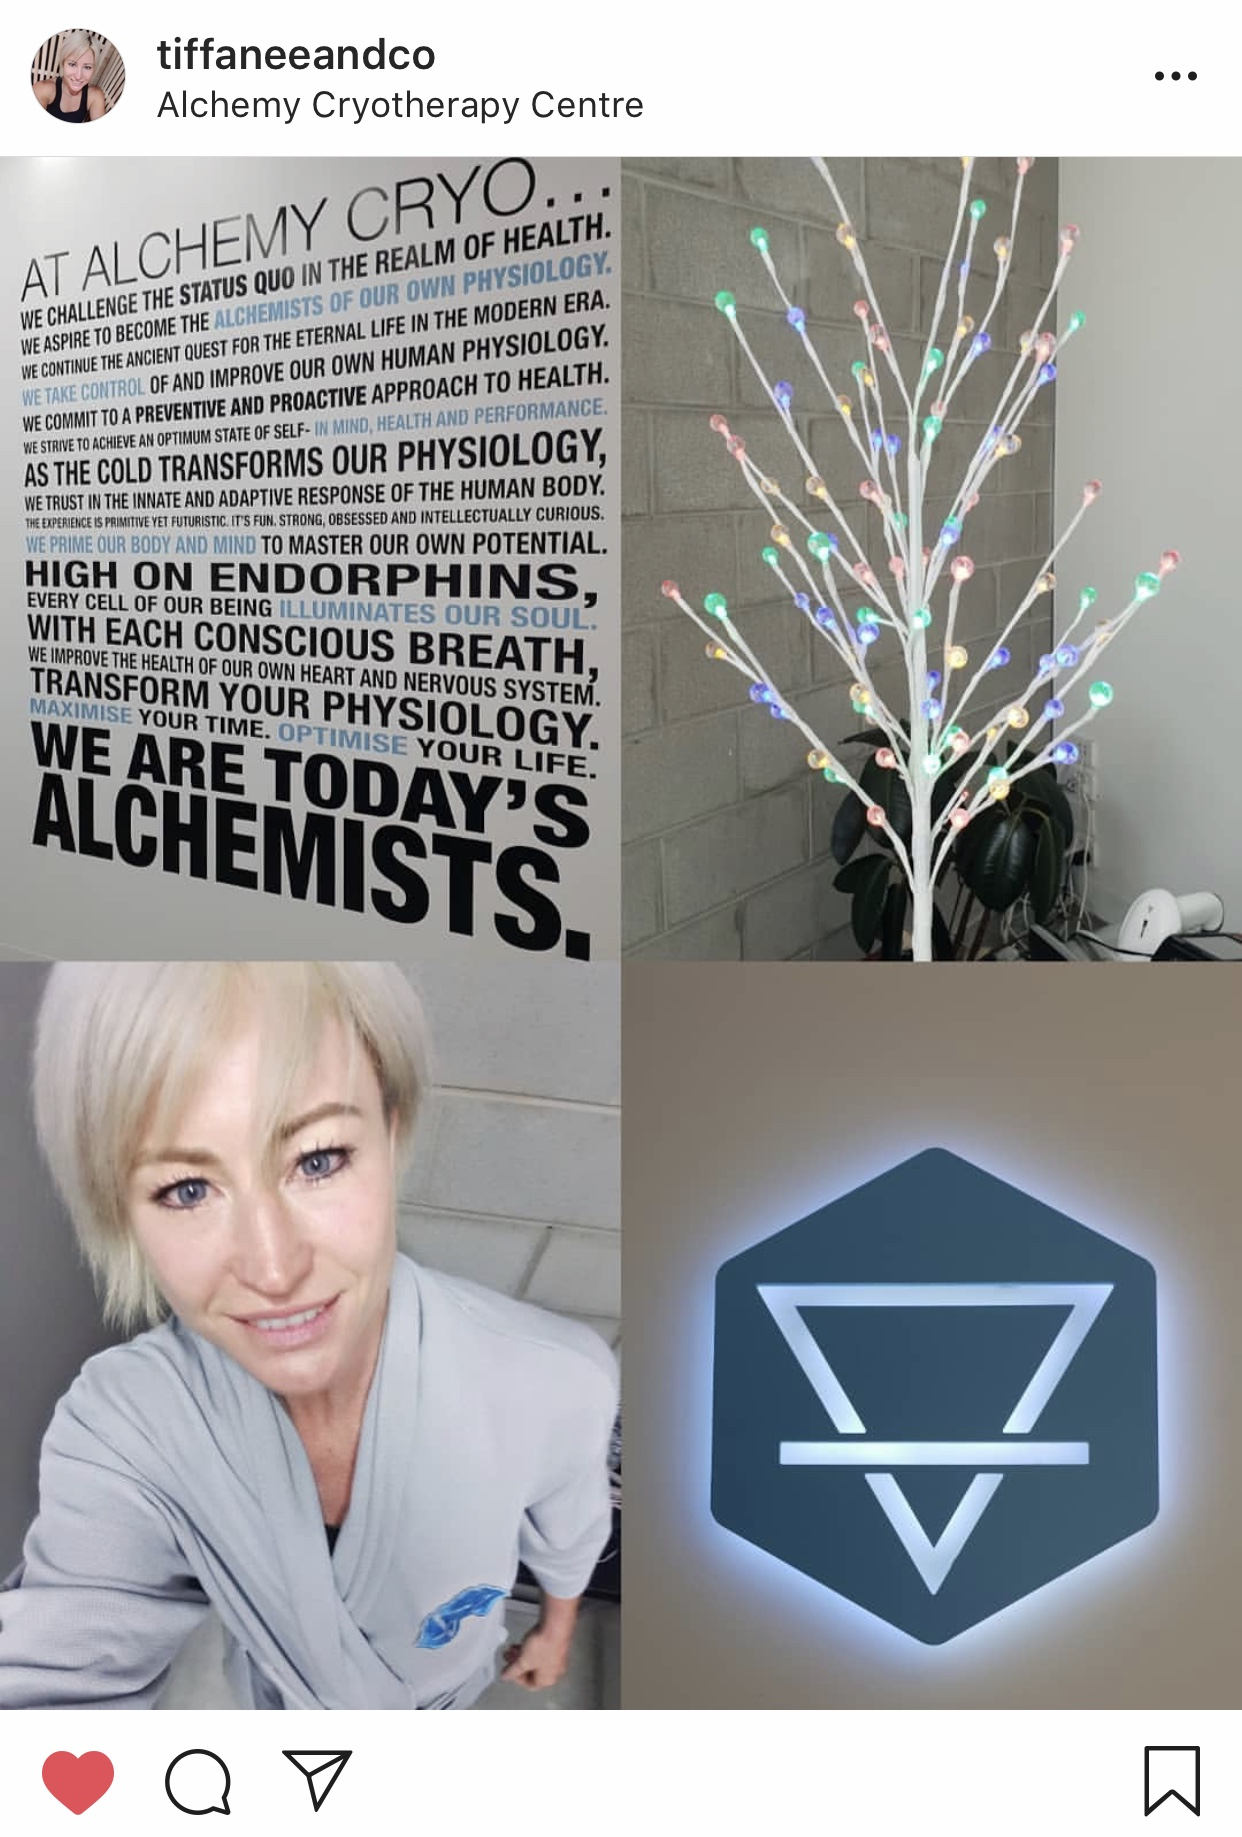 Tiff Cook First Alchemy Cryo.jpg